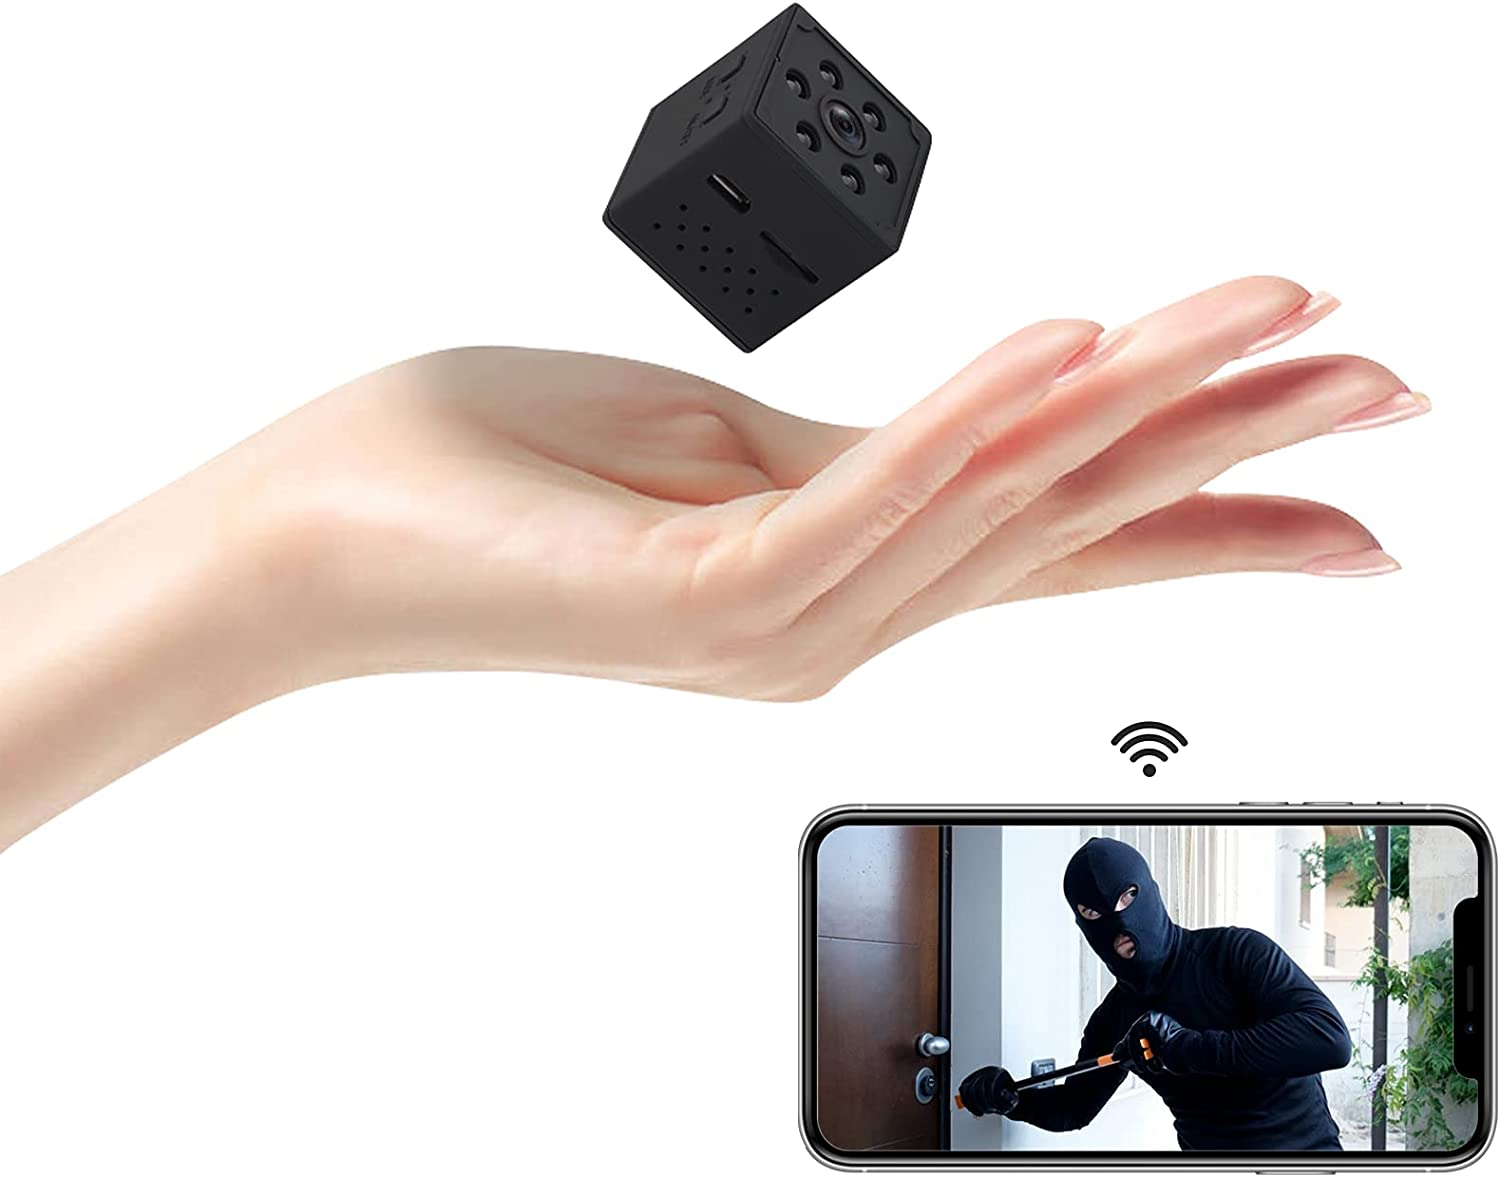 Mini Camera, CHARMINER 4K HD Web Camera, Mini Wireless Cam, Small WiFi Nanny Camera with Phone App Night Vision Motion Detection Portable Smart Camera for Indoor/Home/Apartment/Office(Black)